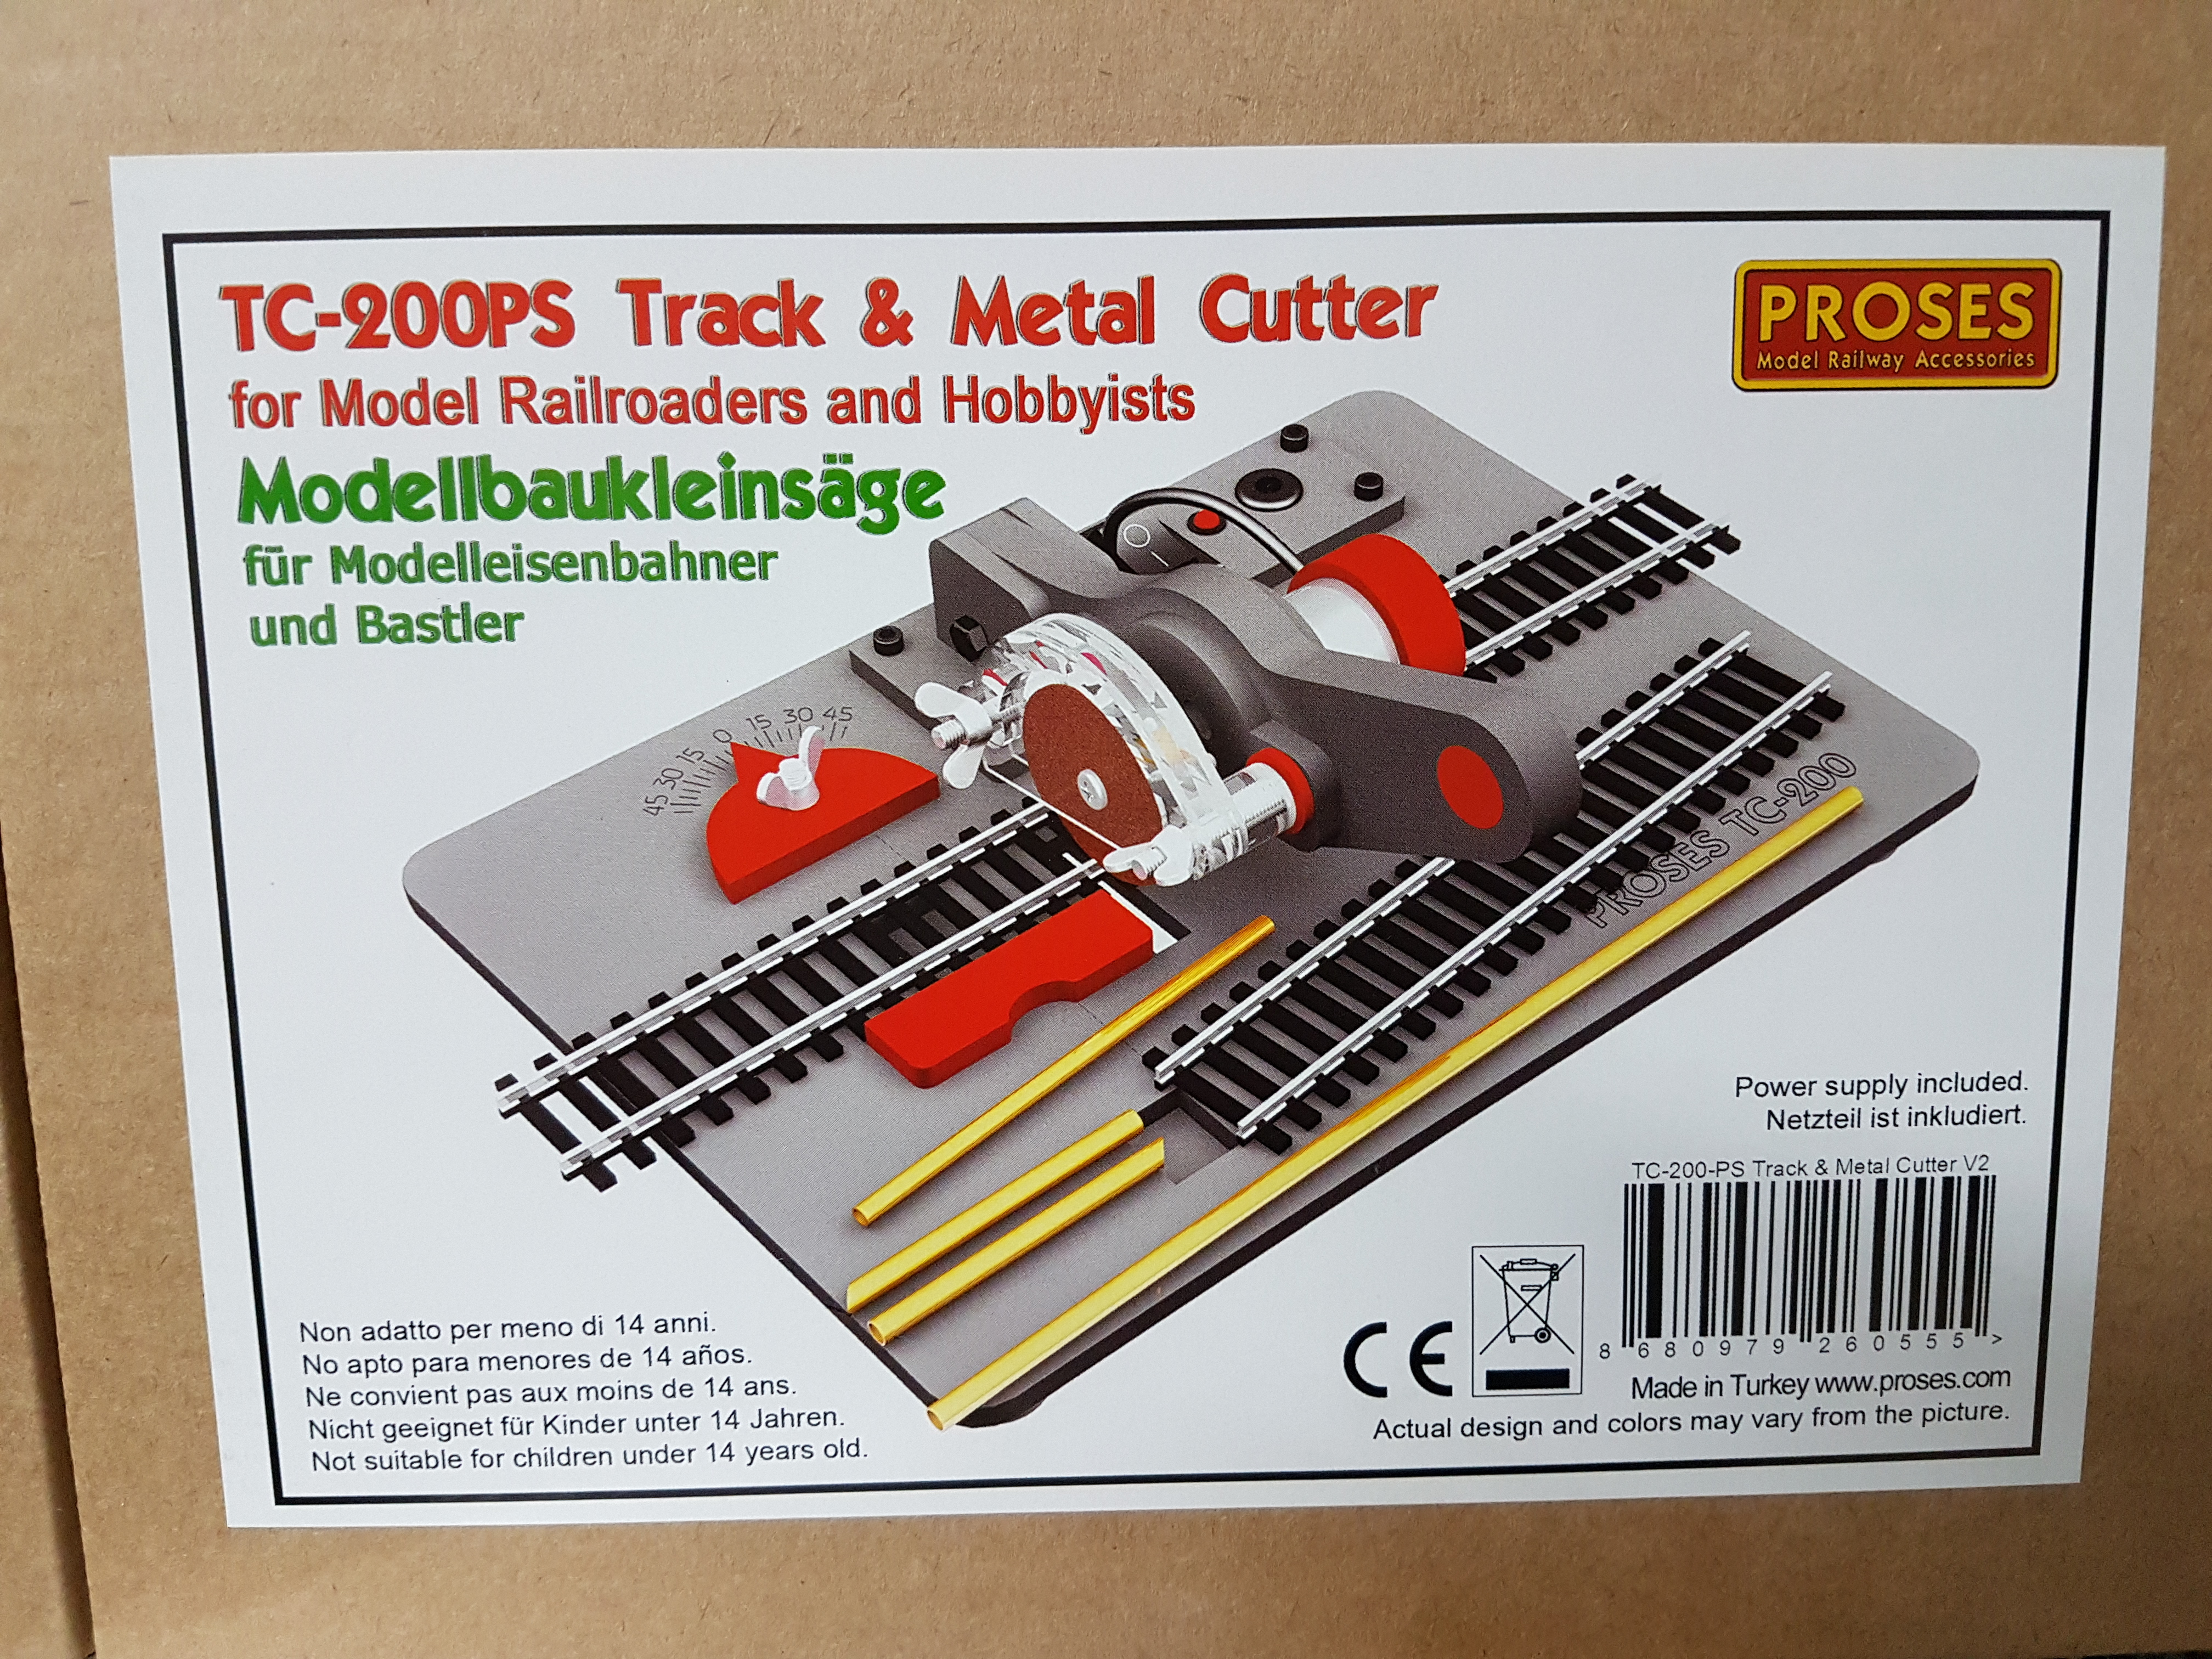 TC-200PS track and metal cutter